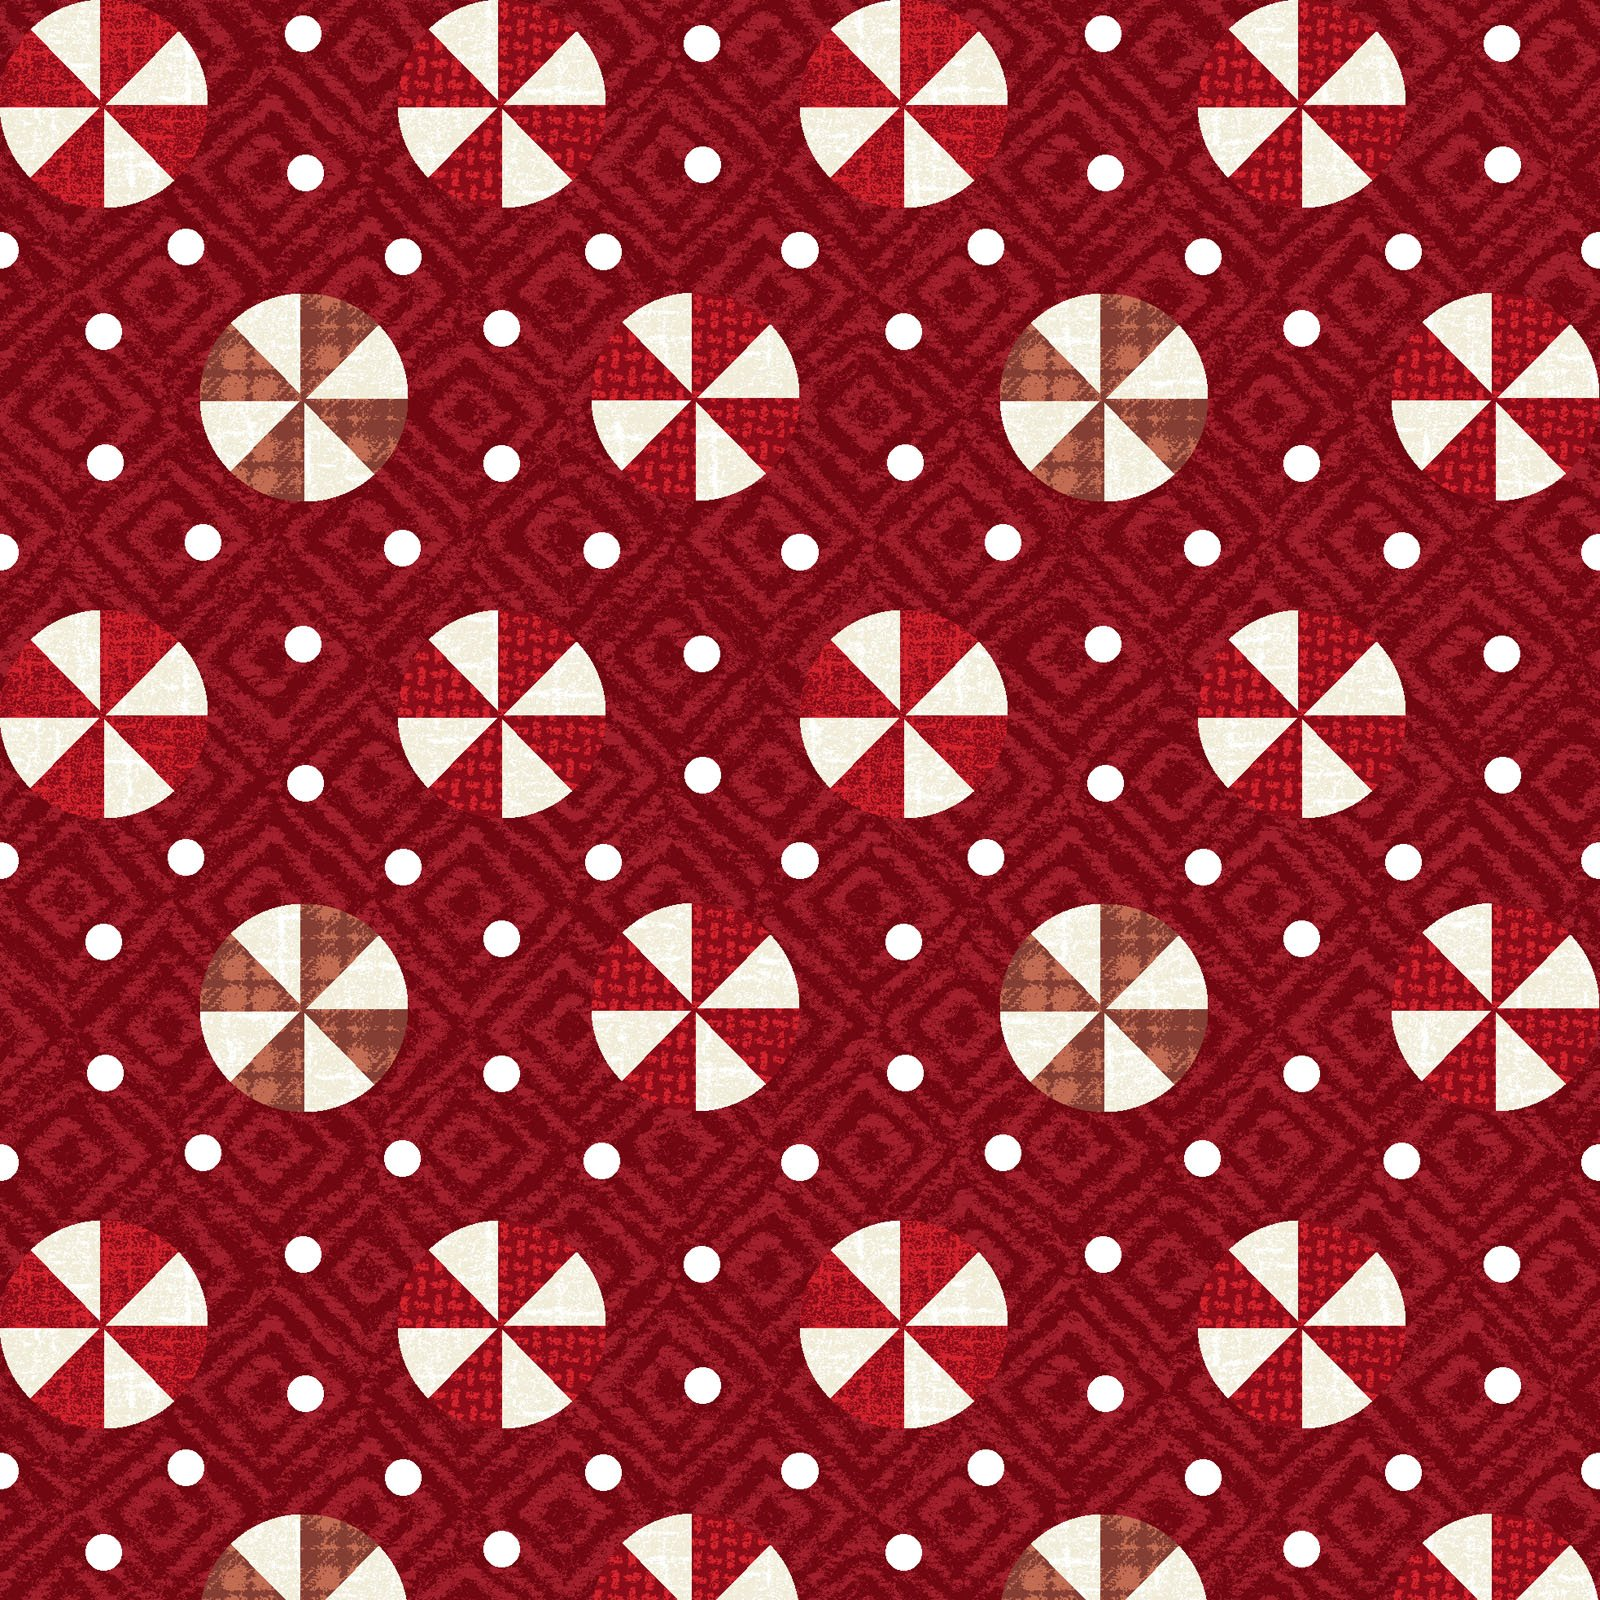 EESC-F9936 R - SNOWDAYS FLANNEL BY BONNIE SULLIVAN PEPPERMINT RED - ARRIVING IN JULY 2021